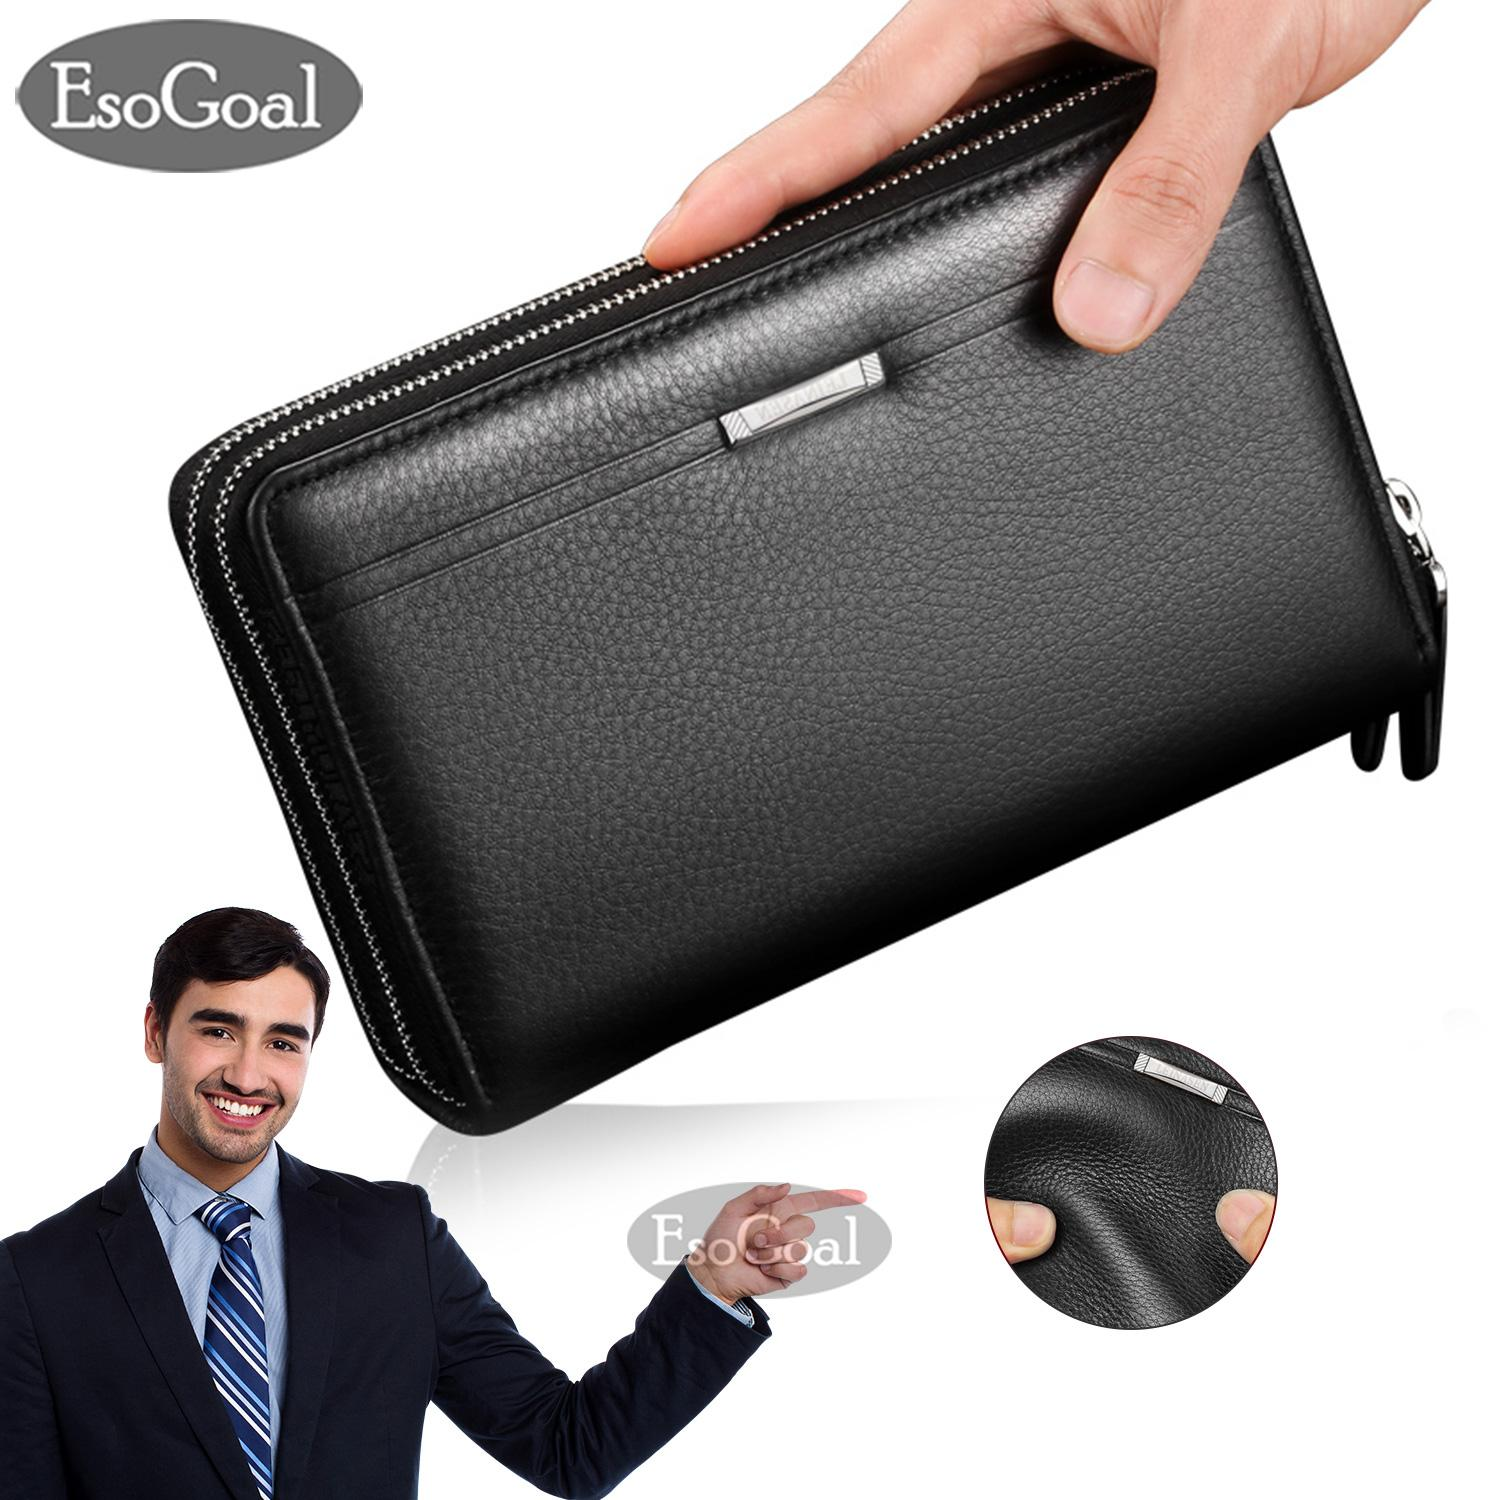 Dompet Pria Esogoal Men Clutch Bag Long Purse Pu Leather Wallet Lichee Handbag Double Zippers Bag Long Zipper Wallet New Professional Men Fashion Leather Hand Bag By Esogoal.